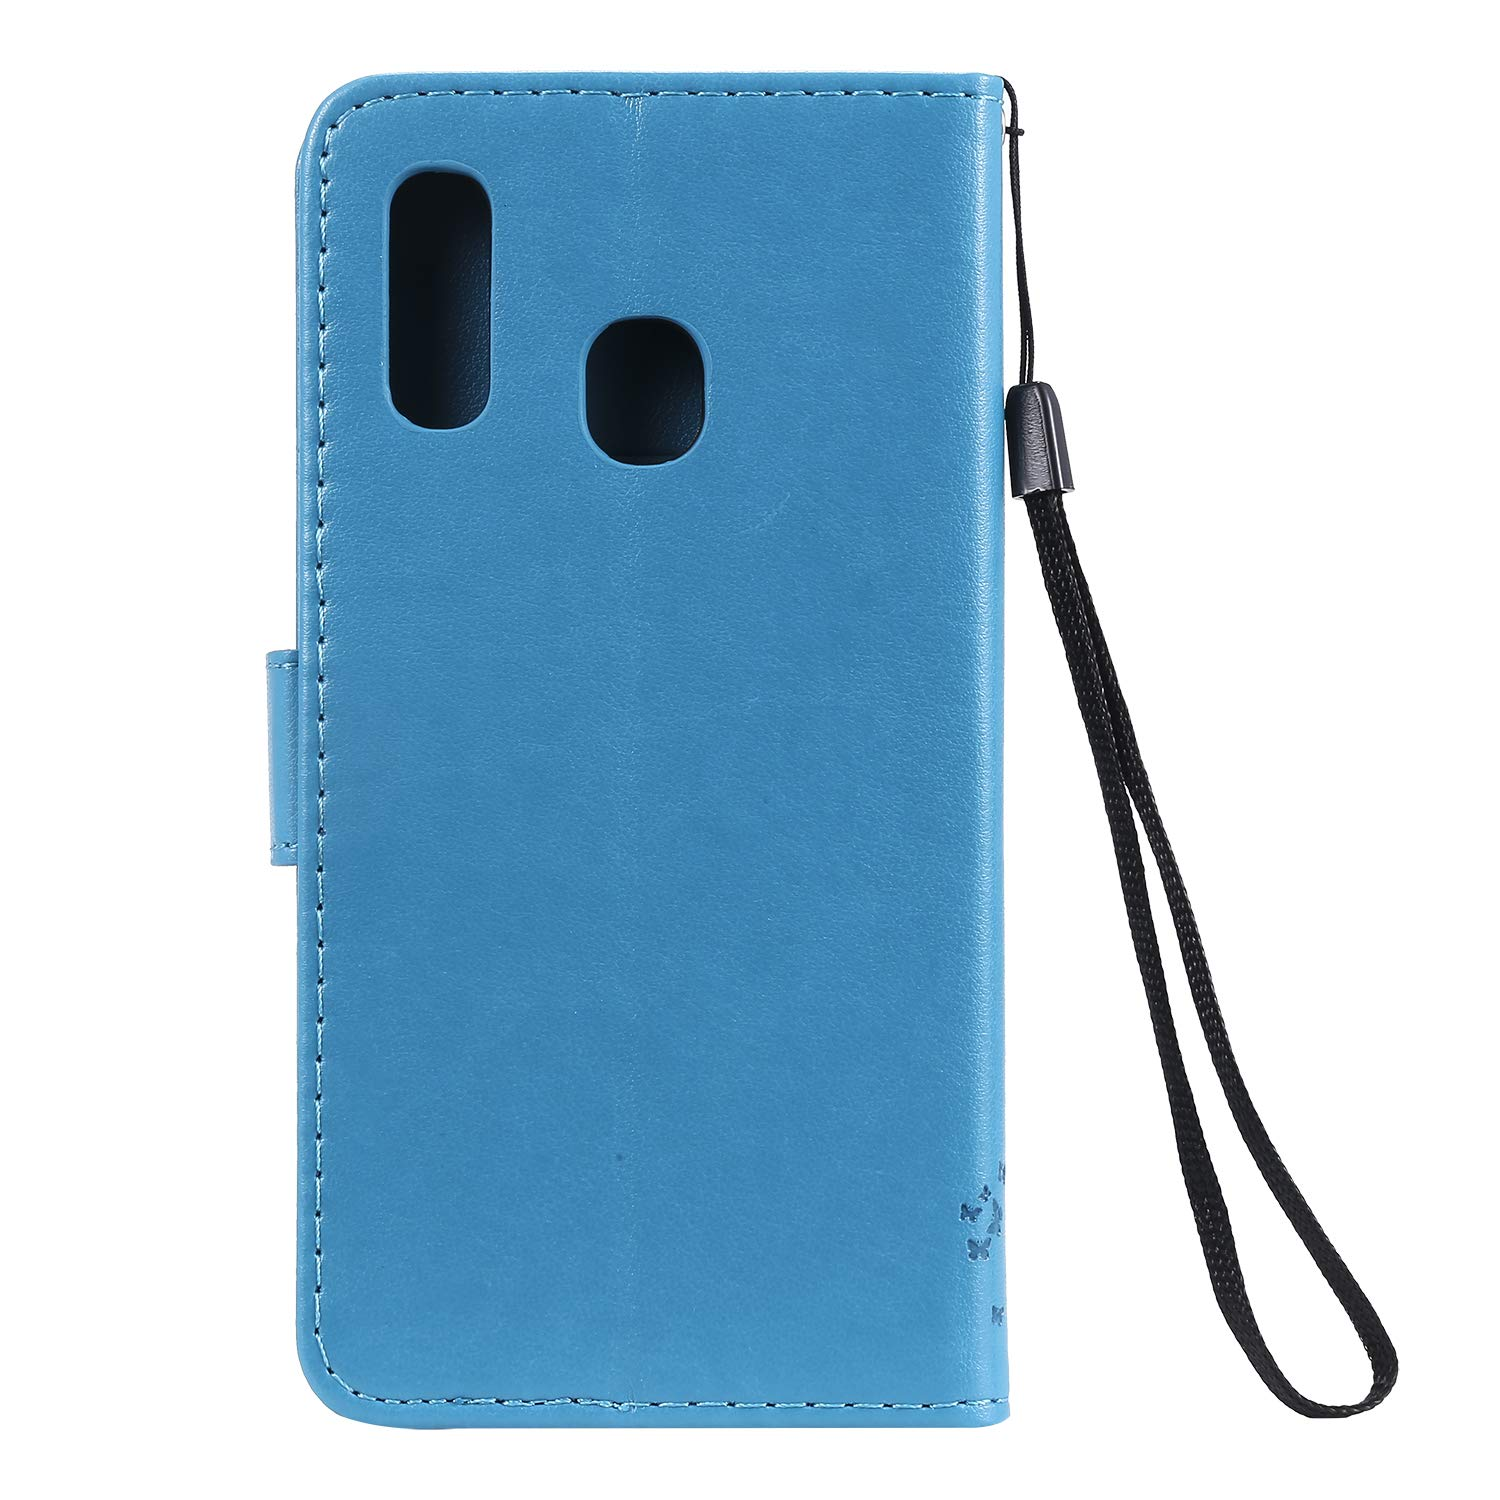 AILRINNI Case for Samsung Galaxy A20e - Premium Leather Flip Wallet Phone Case Cover Design for Samsung Galaxy A20e [Card Slots] [Magnetic Closure] [Kickstand] - Blue